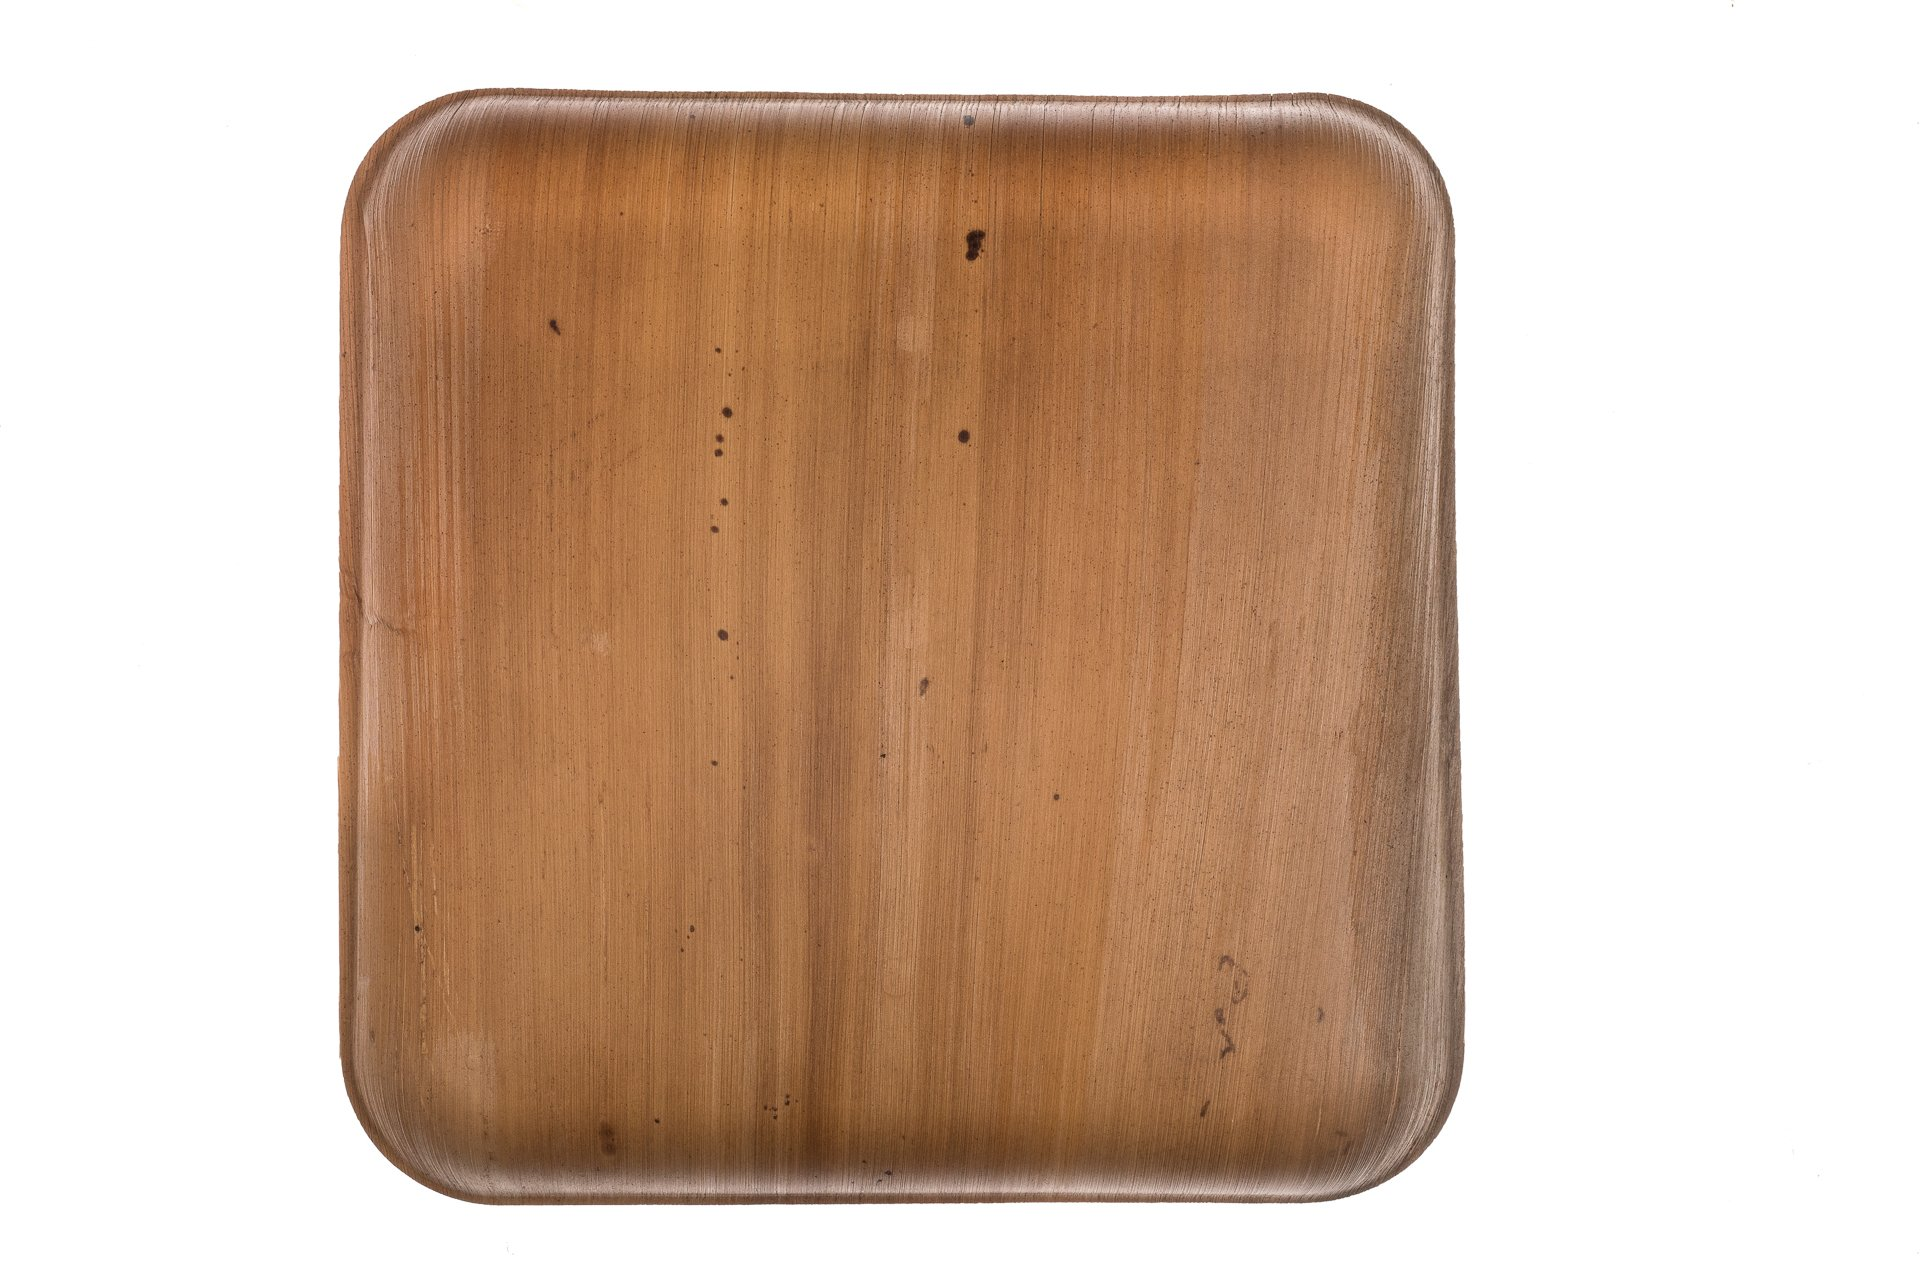 """9"""" Square Palm Leaf Plates - Pack of 25 - Disposable, Compostable, Natural, Tree Free, Sustainable, Eco-Friendly - Fancy Rustic Party Dinnerware and Utensils Like Wood, Bamboo by Clean Earth Goods (Image #9)"""